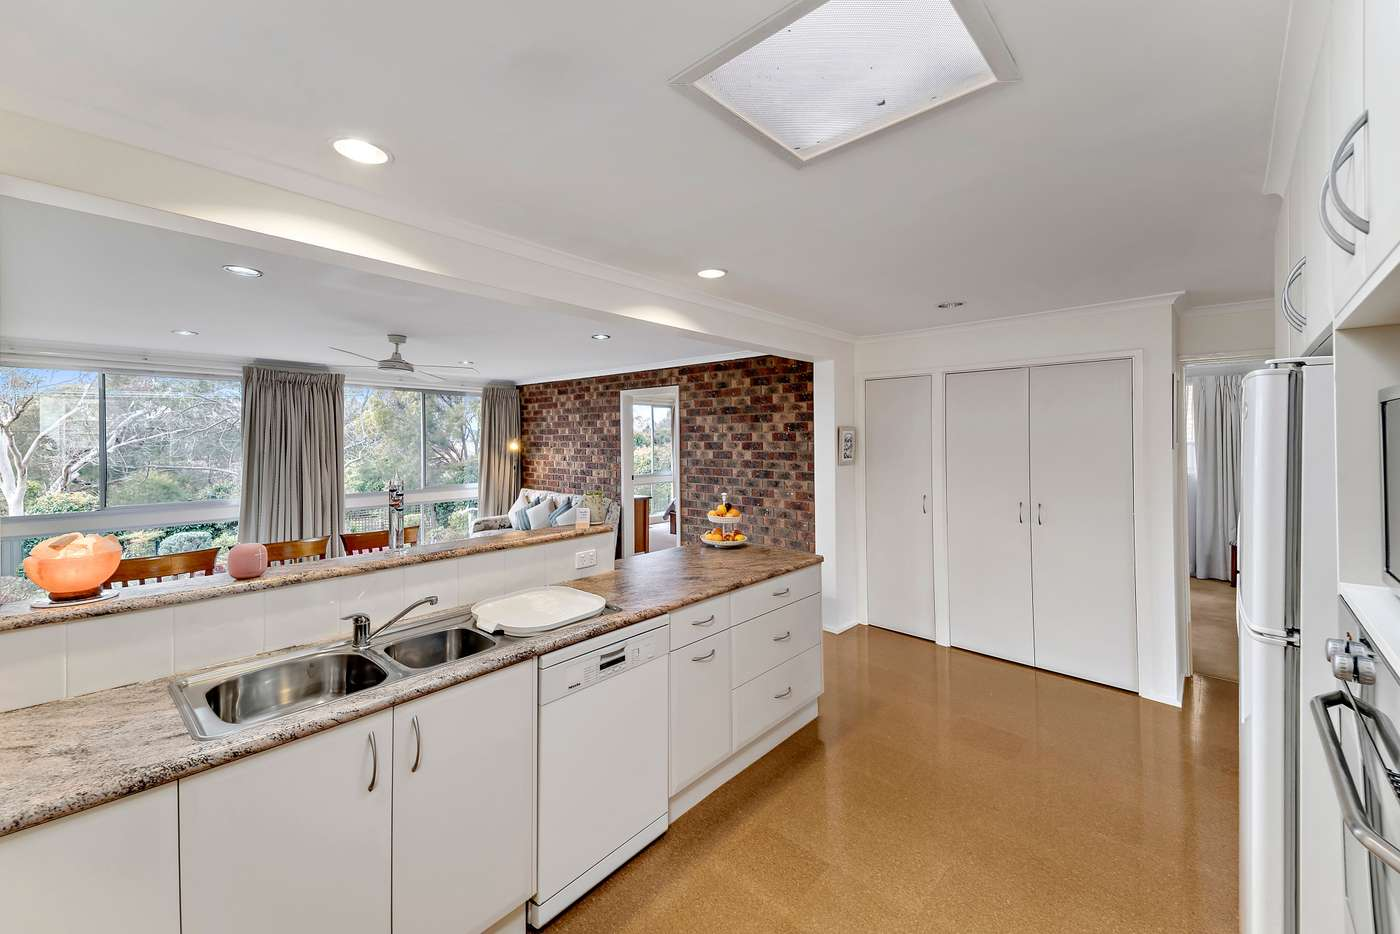 Seventh view of Homely house listing, 3 De Smet Place, Fraser ACT 2615